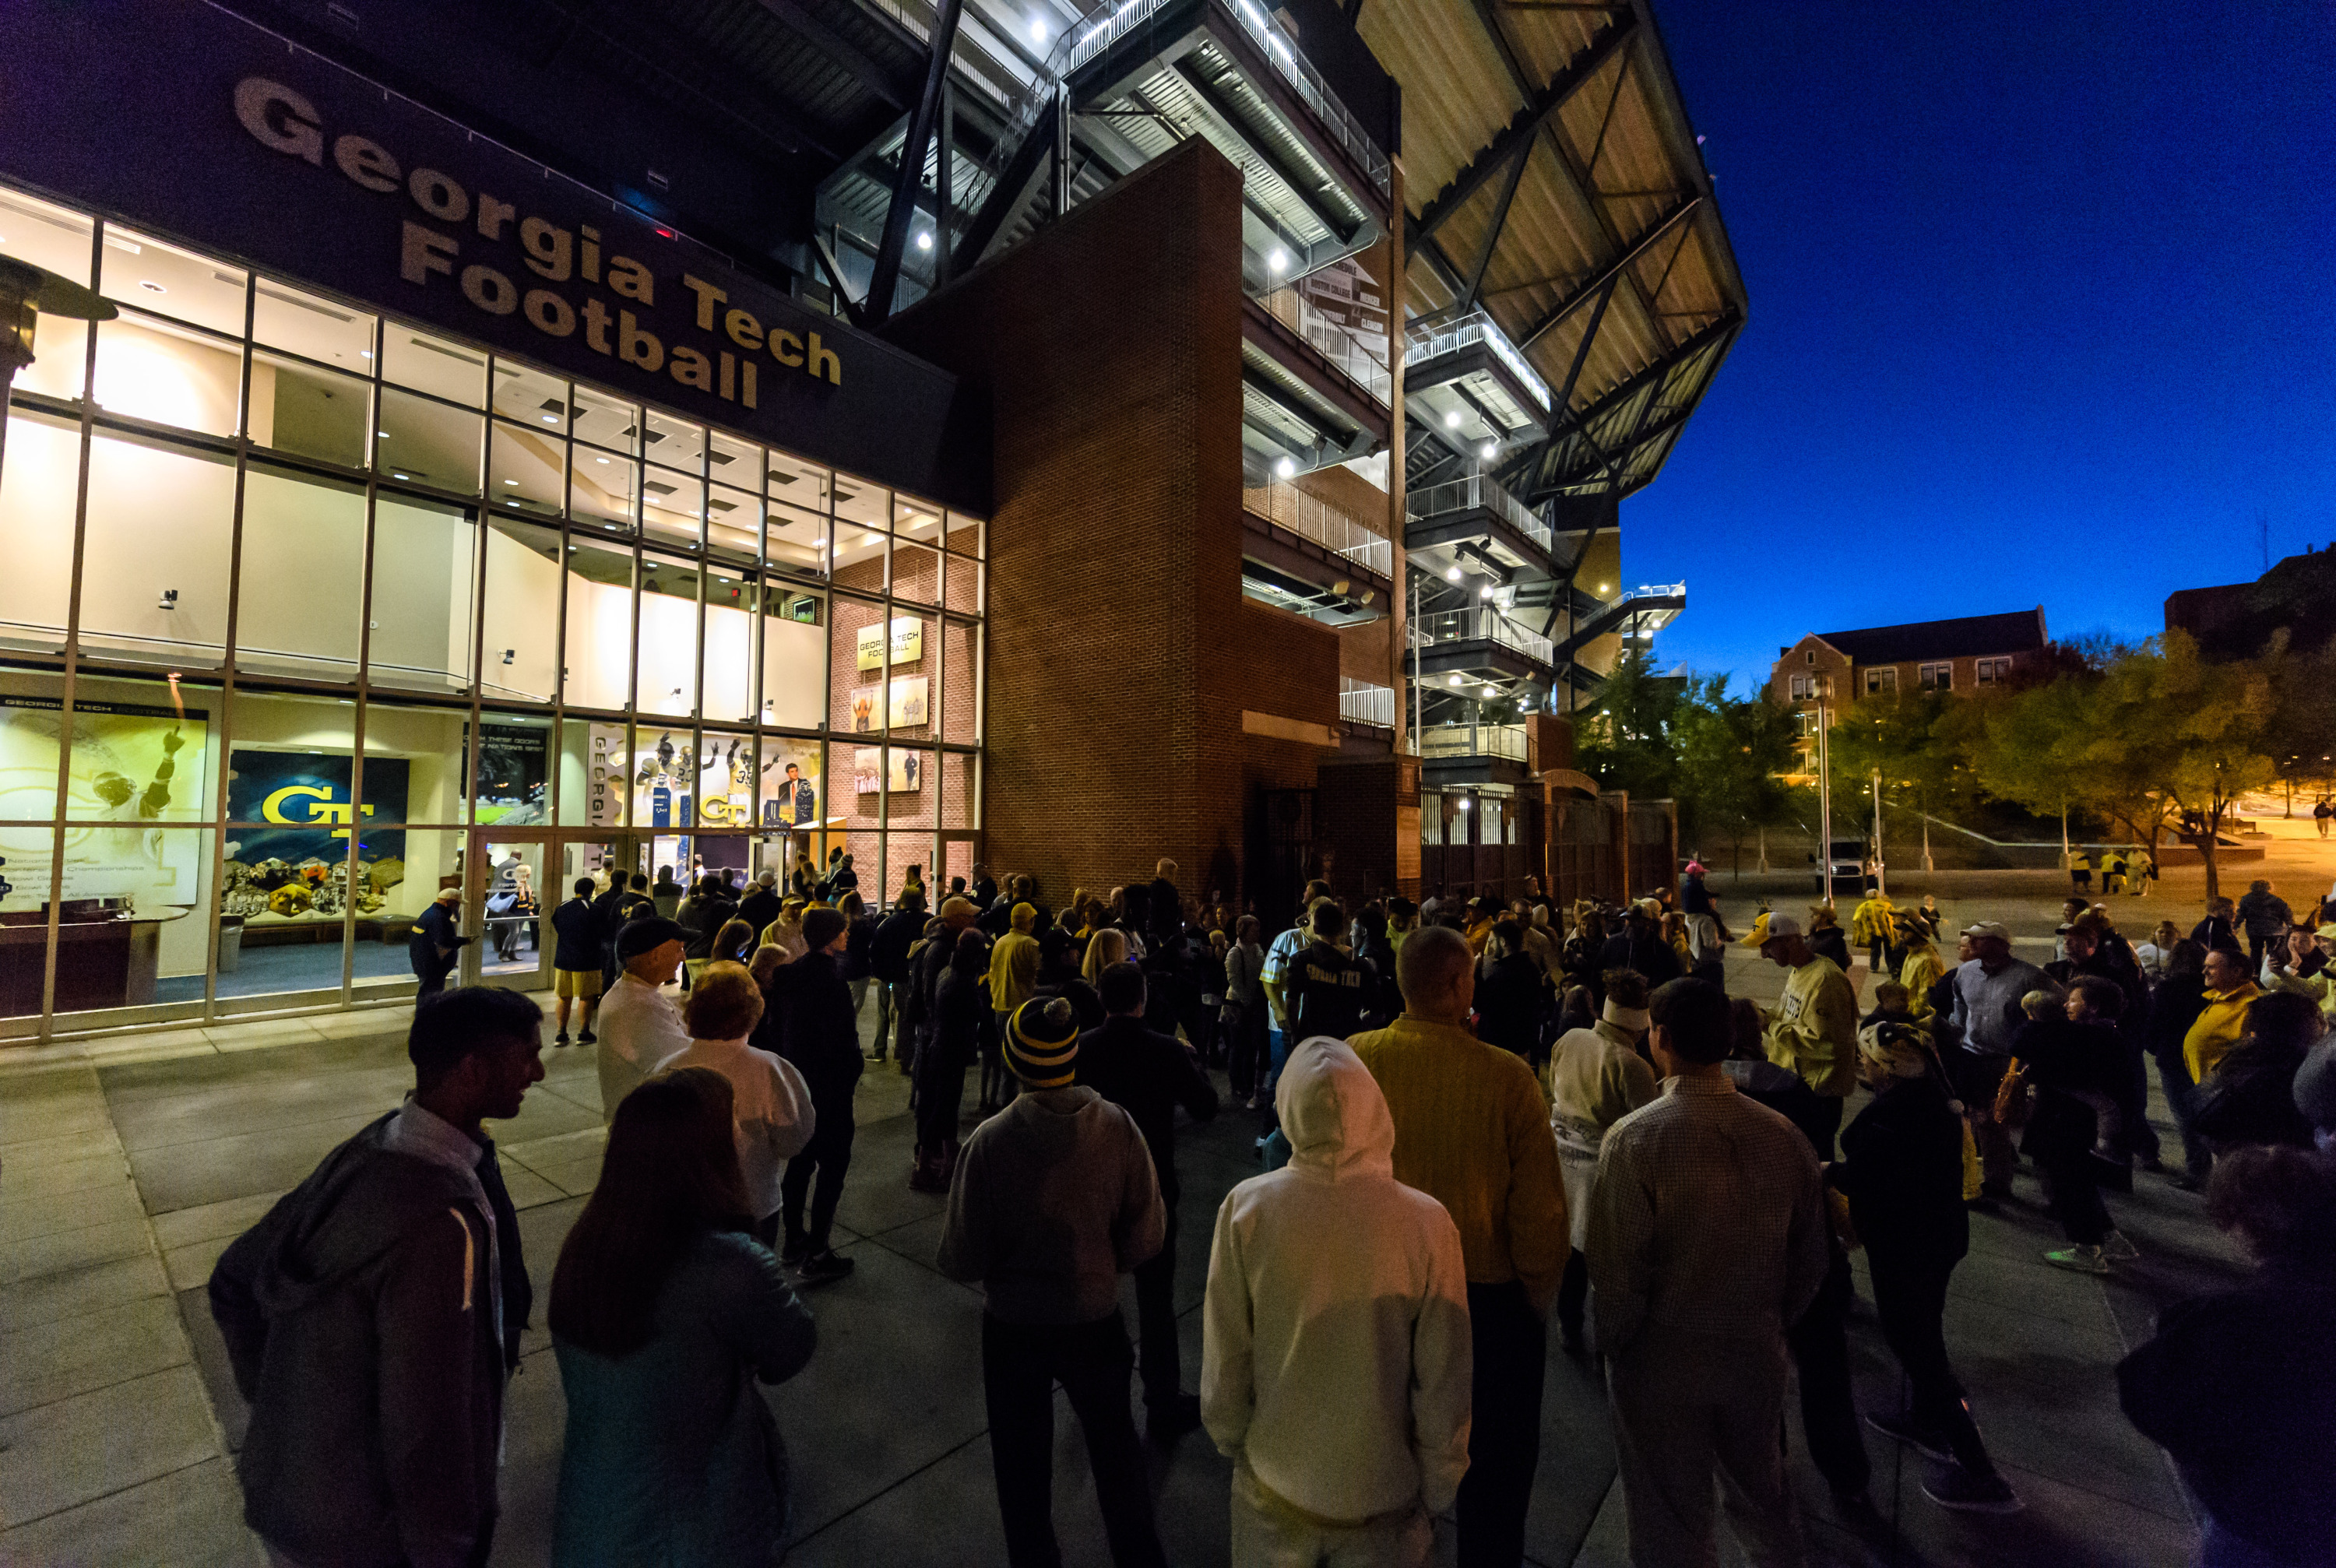 A crowd of fans awaited the team back at Bobby Dodd Stadium